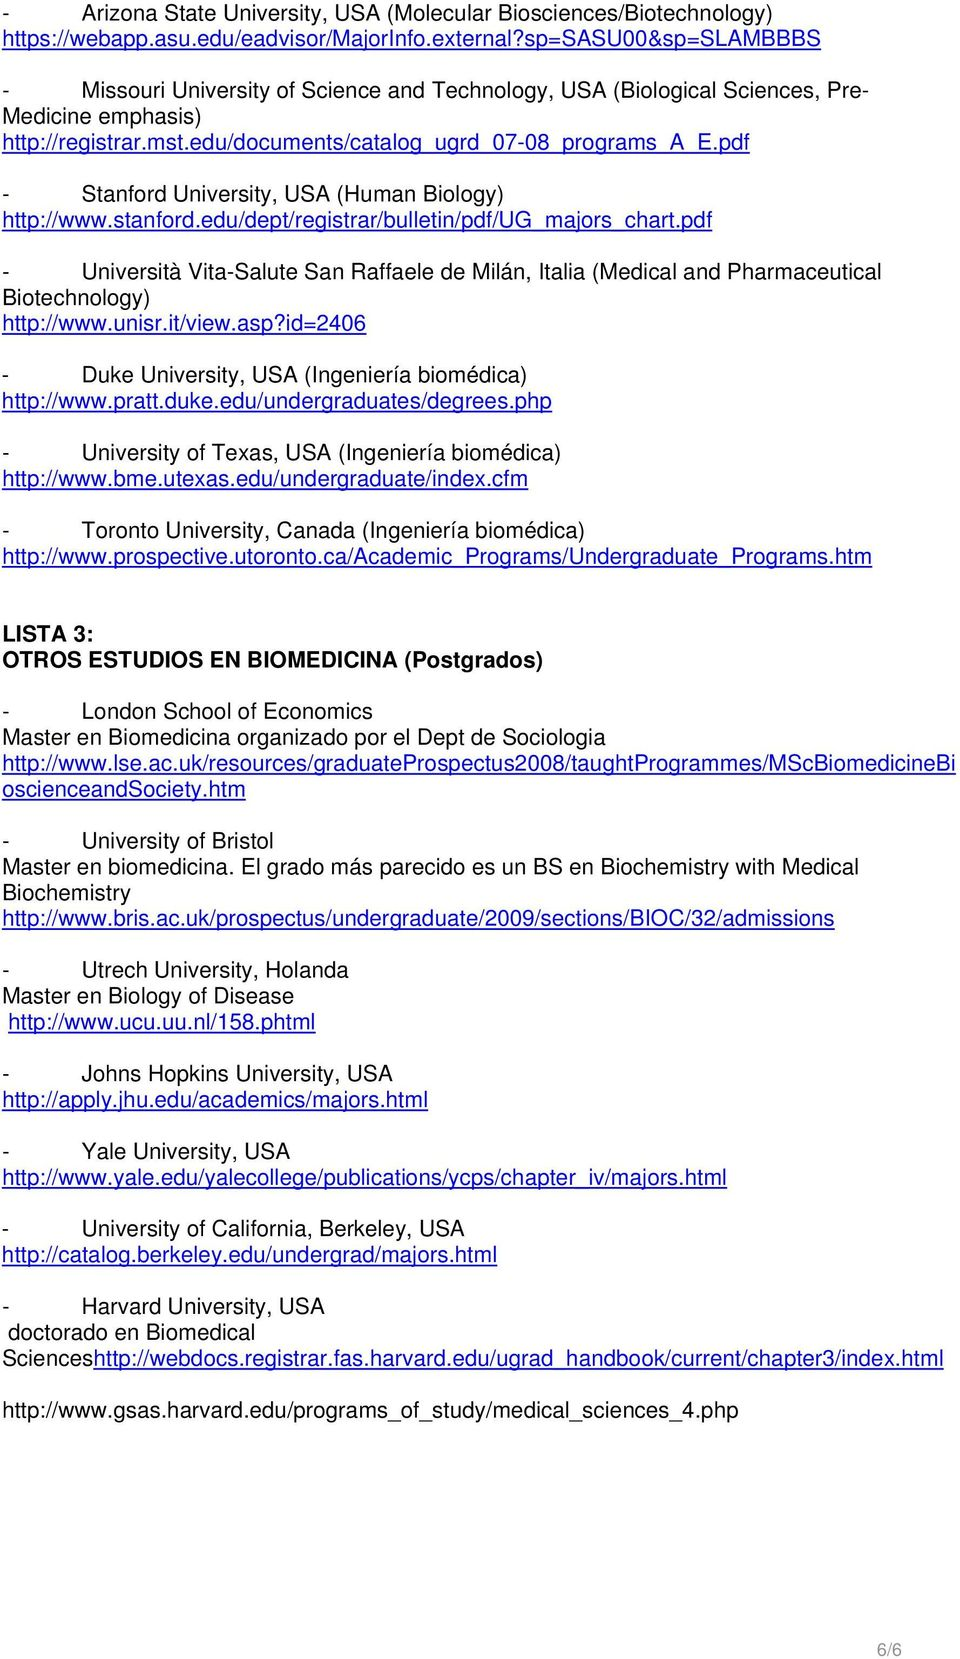 pdf - Stanford University, USA (Human Biology) http://www.stanford.edu/dept/registrar/bulletin/pdf/ug_majors_chart.